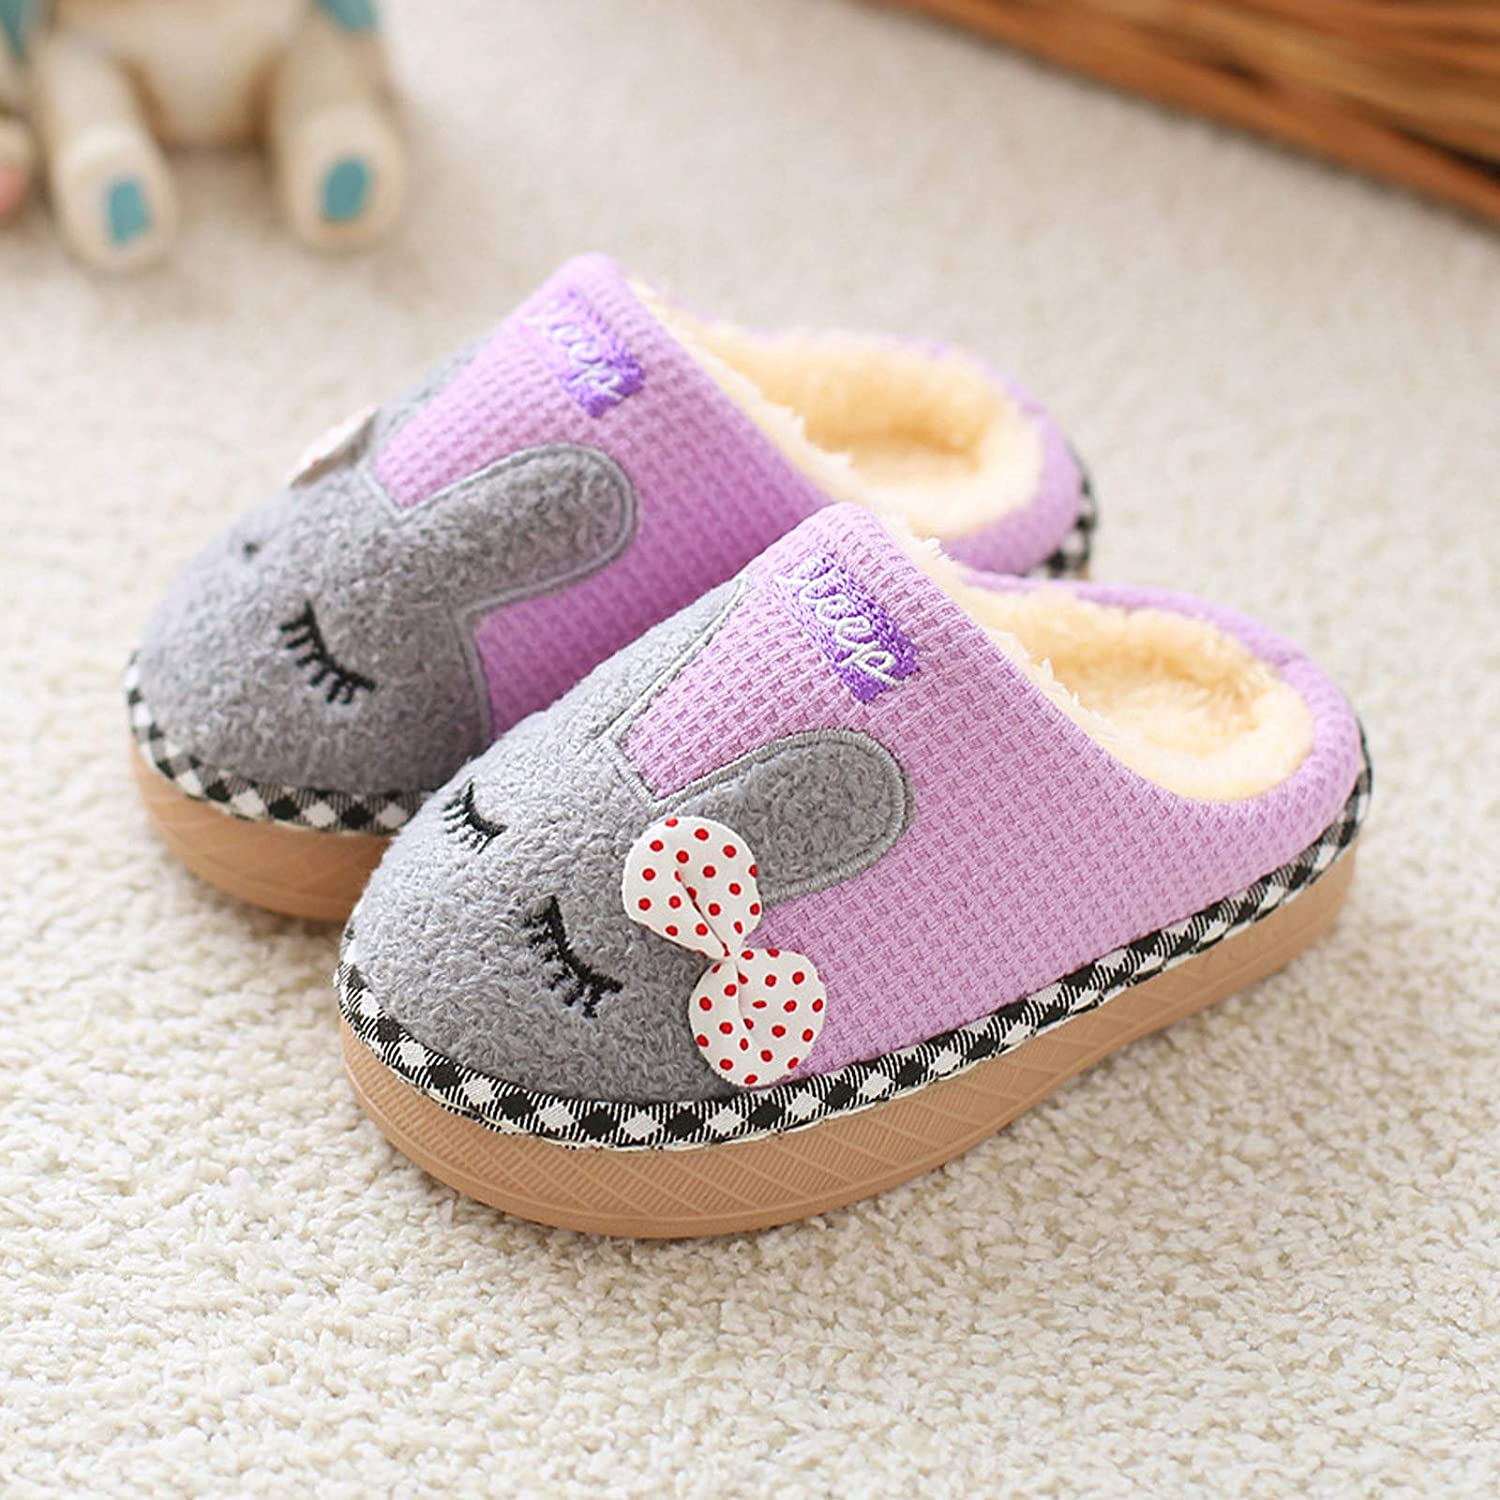 SITAILE Cute House Slippers Boys Girls Fuzzy Fluffy Home Slippers Winter Fur Lined Warm Indoor Slippers for Kids